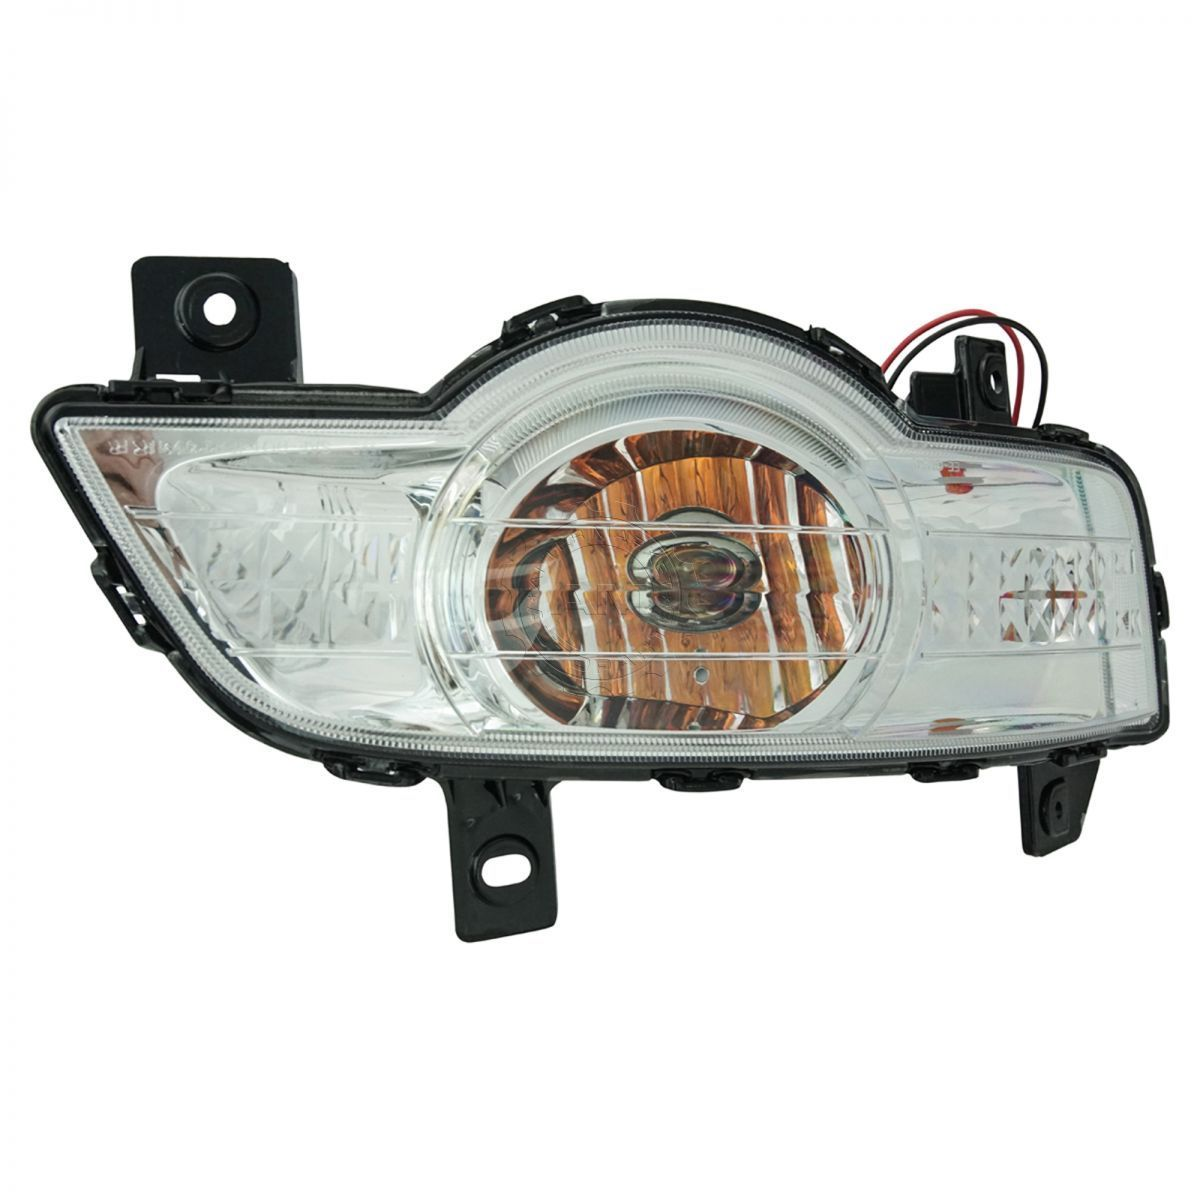 コーナーライト Front Parking Turn Signal Directional Light Lamp Right RH for 09-12 Traverse フロントパーキングターンシグナル方向ライトランプRight RH for 09-12 Traverse